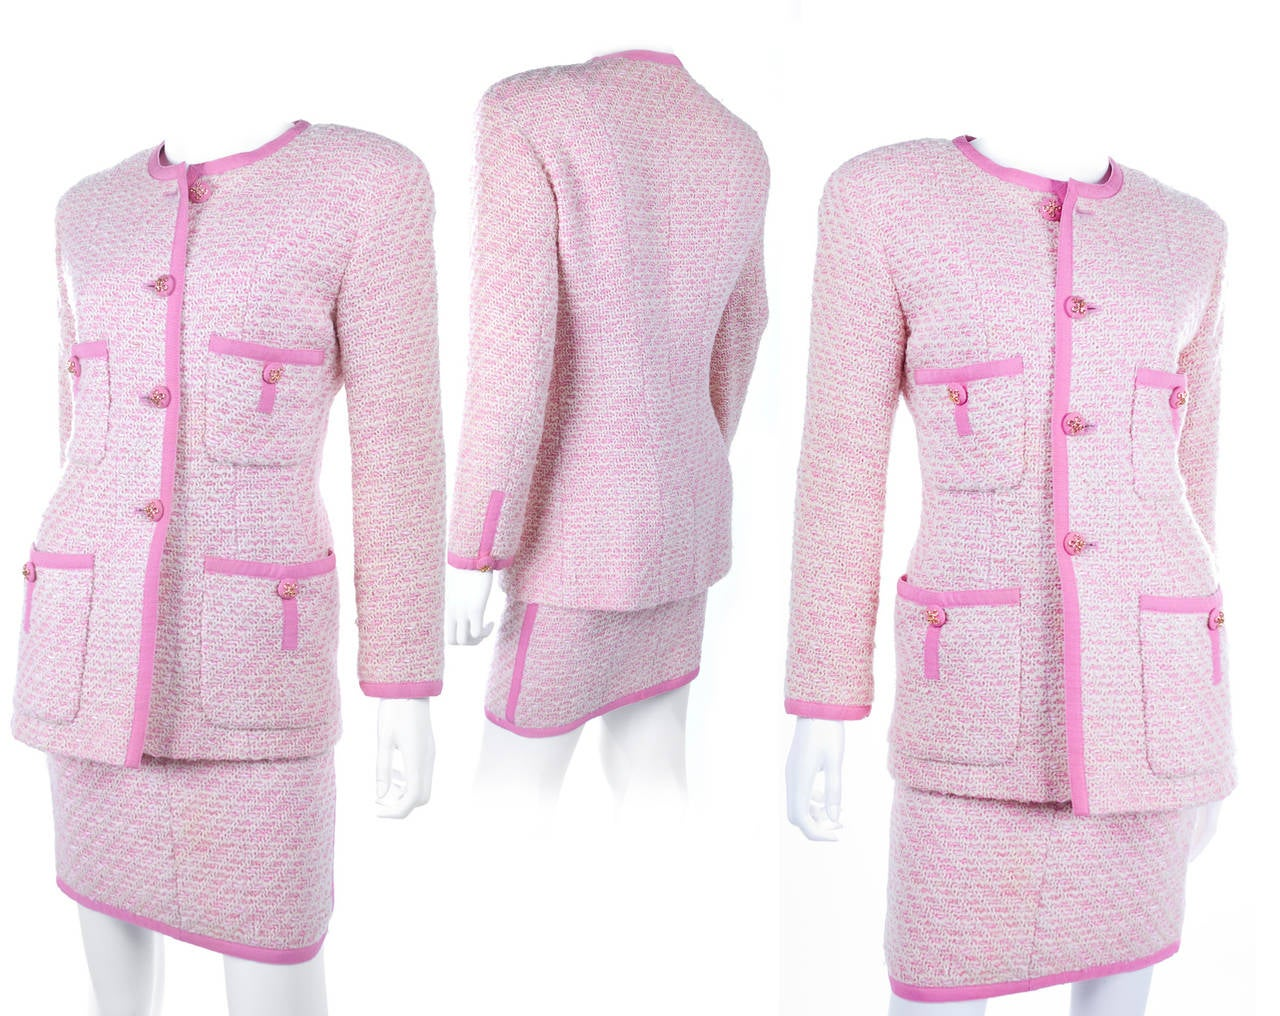 Chanel Suit in Pink and Creme Documented In Excellent Condition In Hamburg, Deutschland